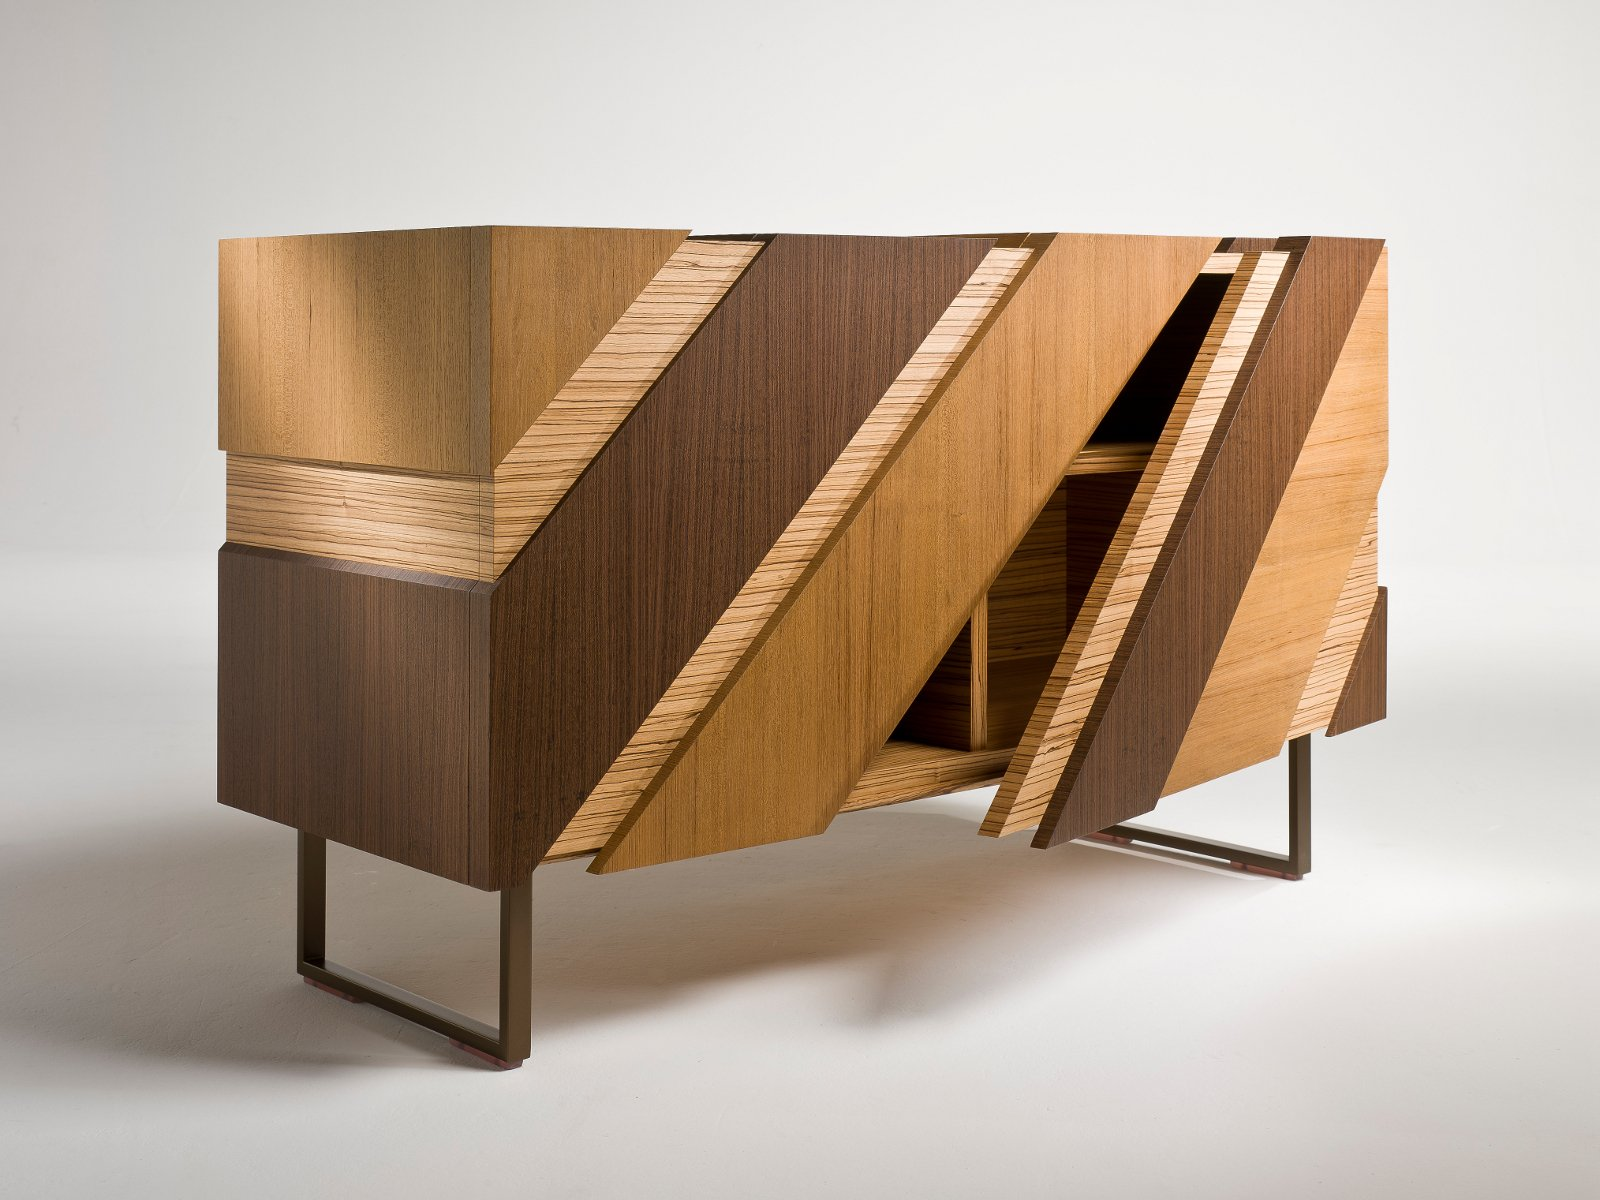 buffet en bois avec portes slide by i 4 mariani design alessandro dubini. Black Bedroom Furniture Sets. Home Design Ideas